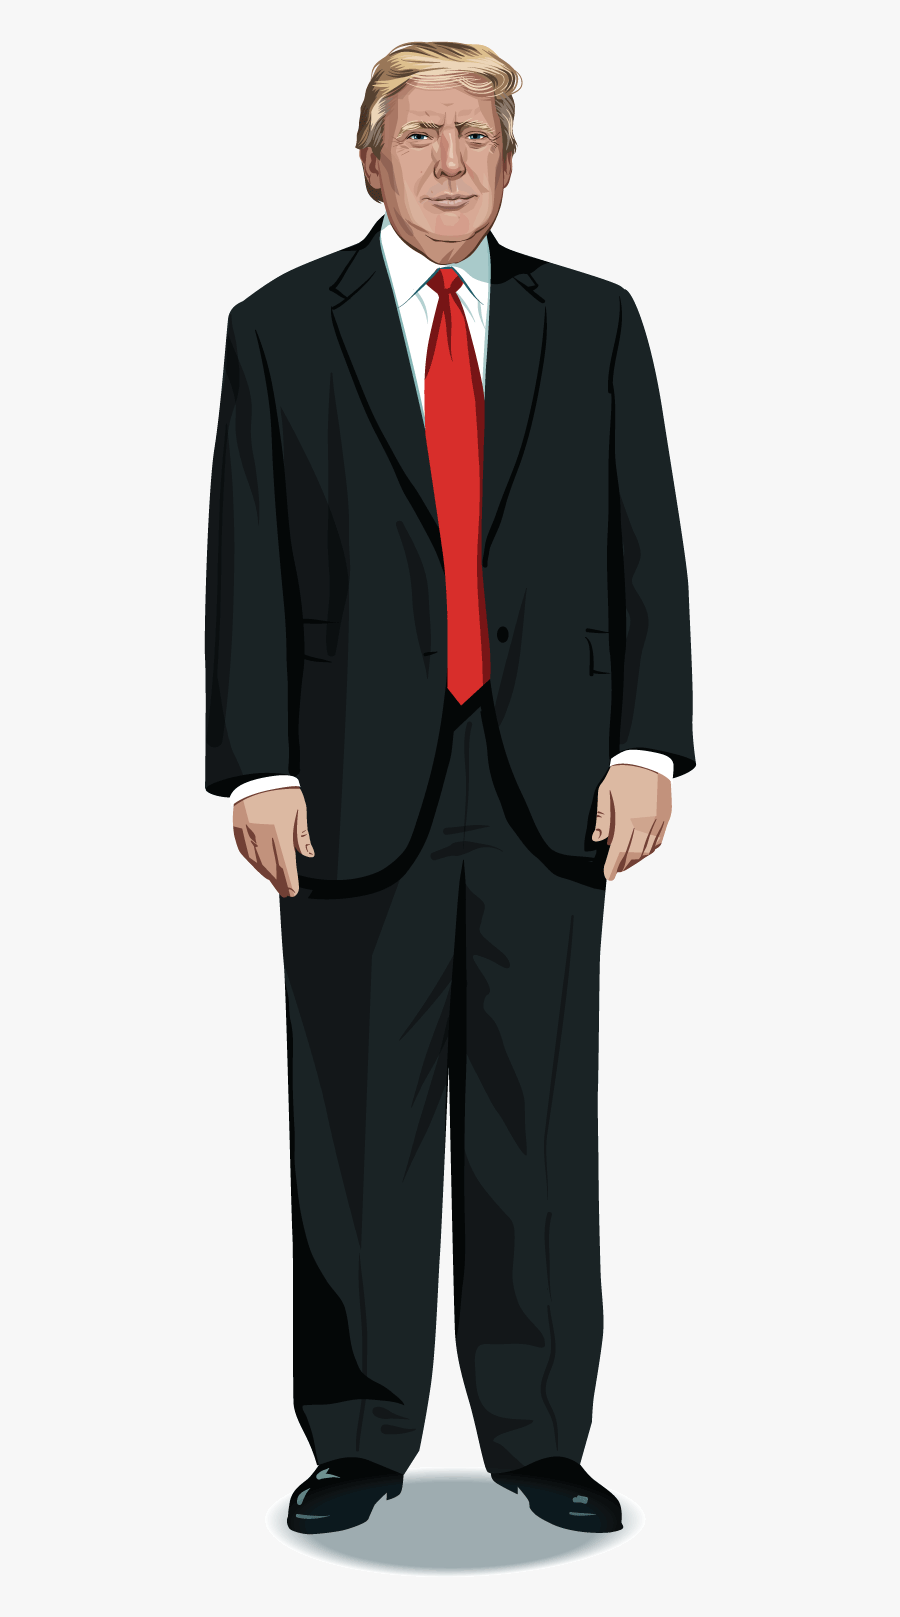 Donald Trump Who Winning The Presidential Election Full Body Trump Png Free Transparent Clipart Clipartkey Full indictment against donald trump adviser roger stone. donald trump who winning the